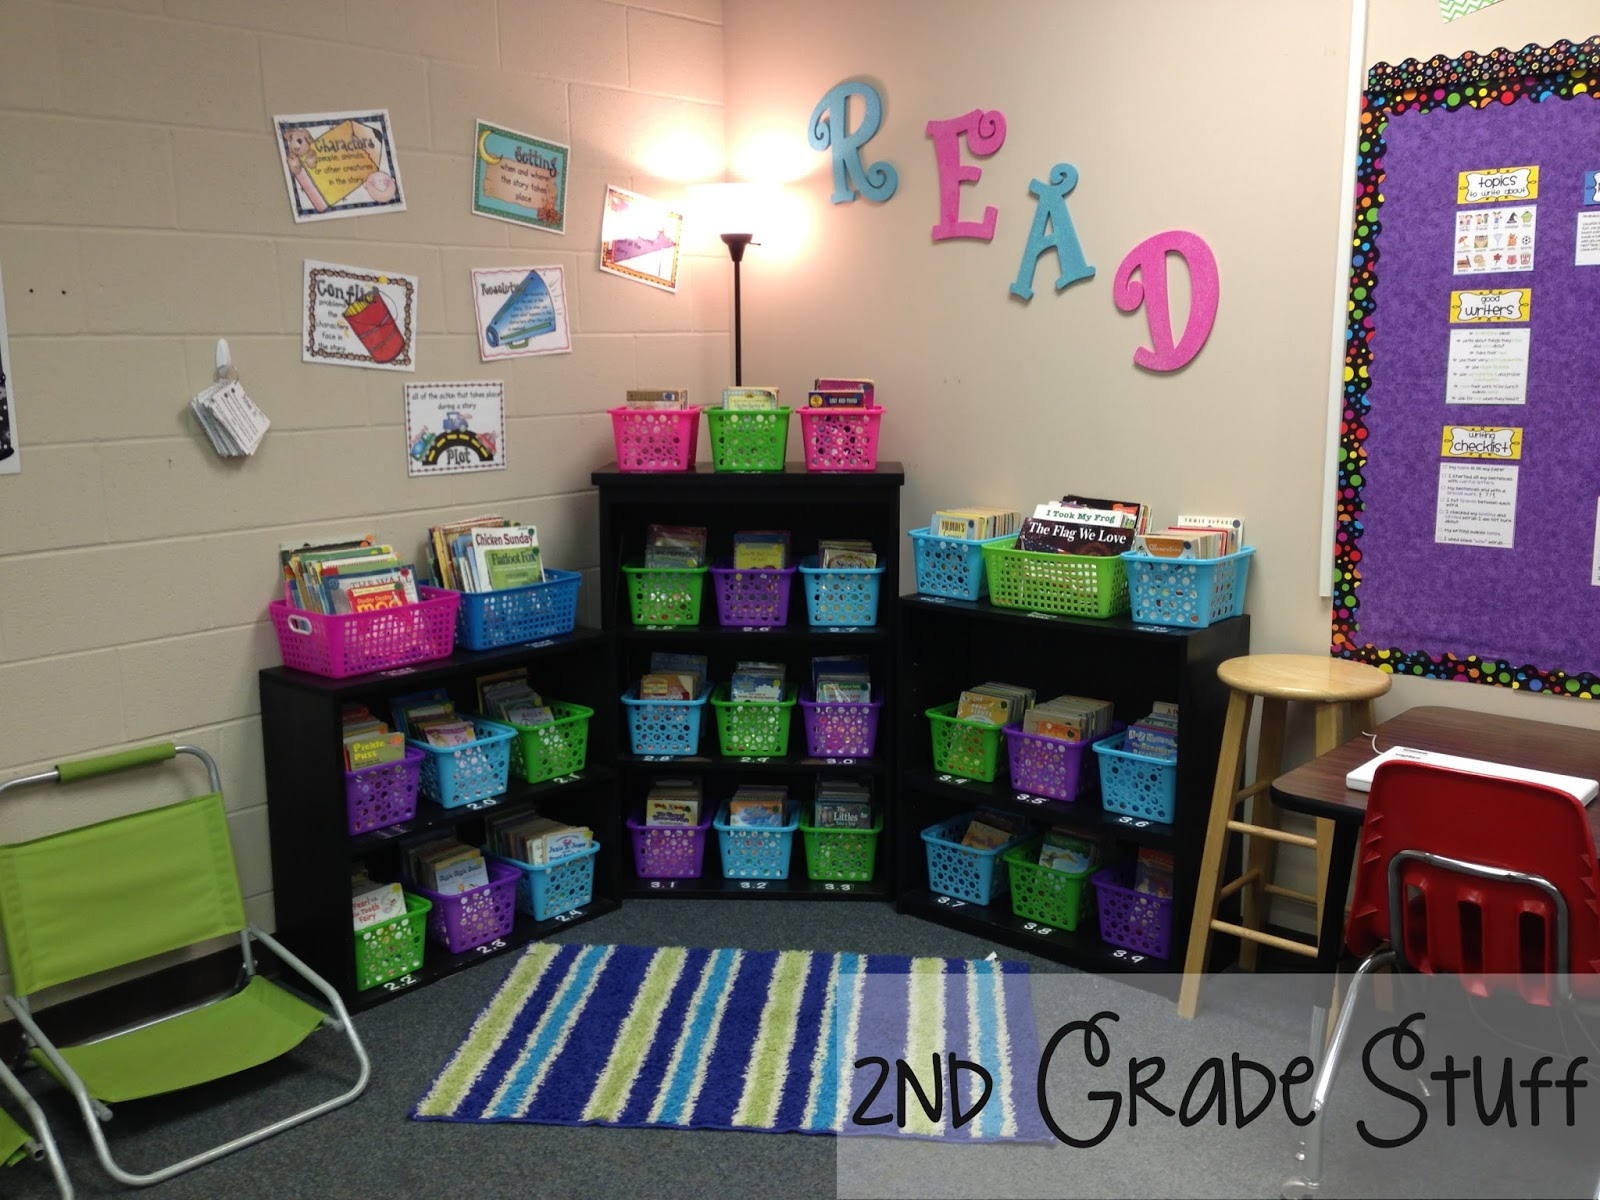 Classroom Library Decorating Ideas ~ Nd grade stuff classroom tour